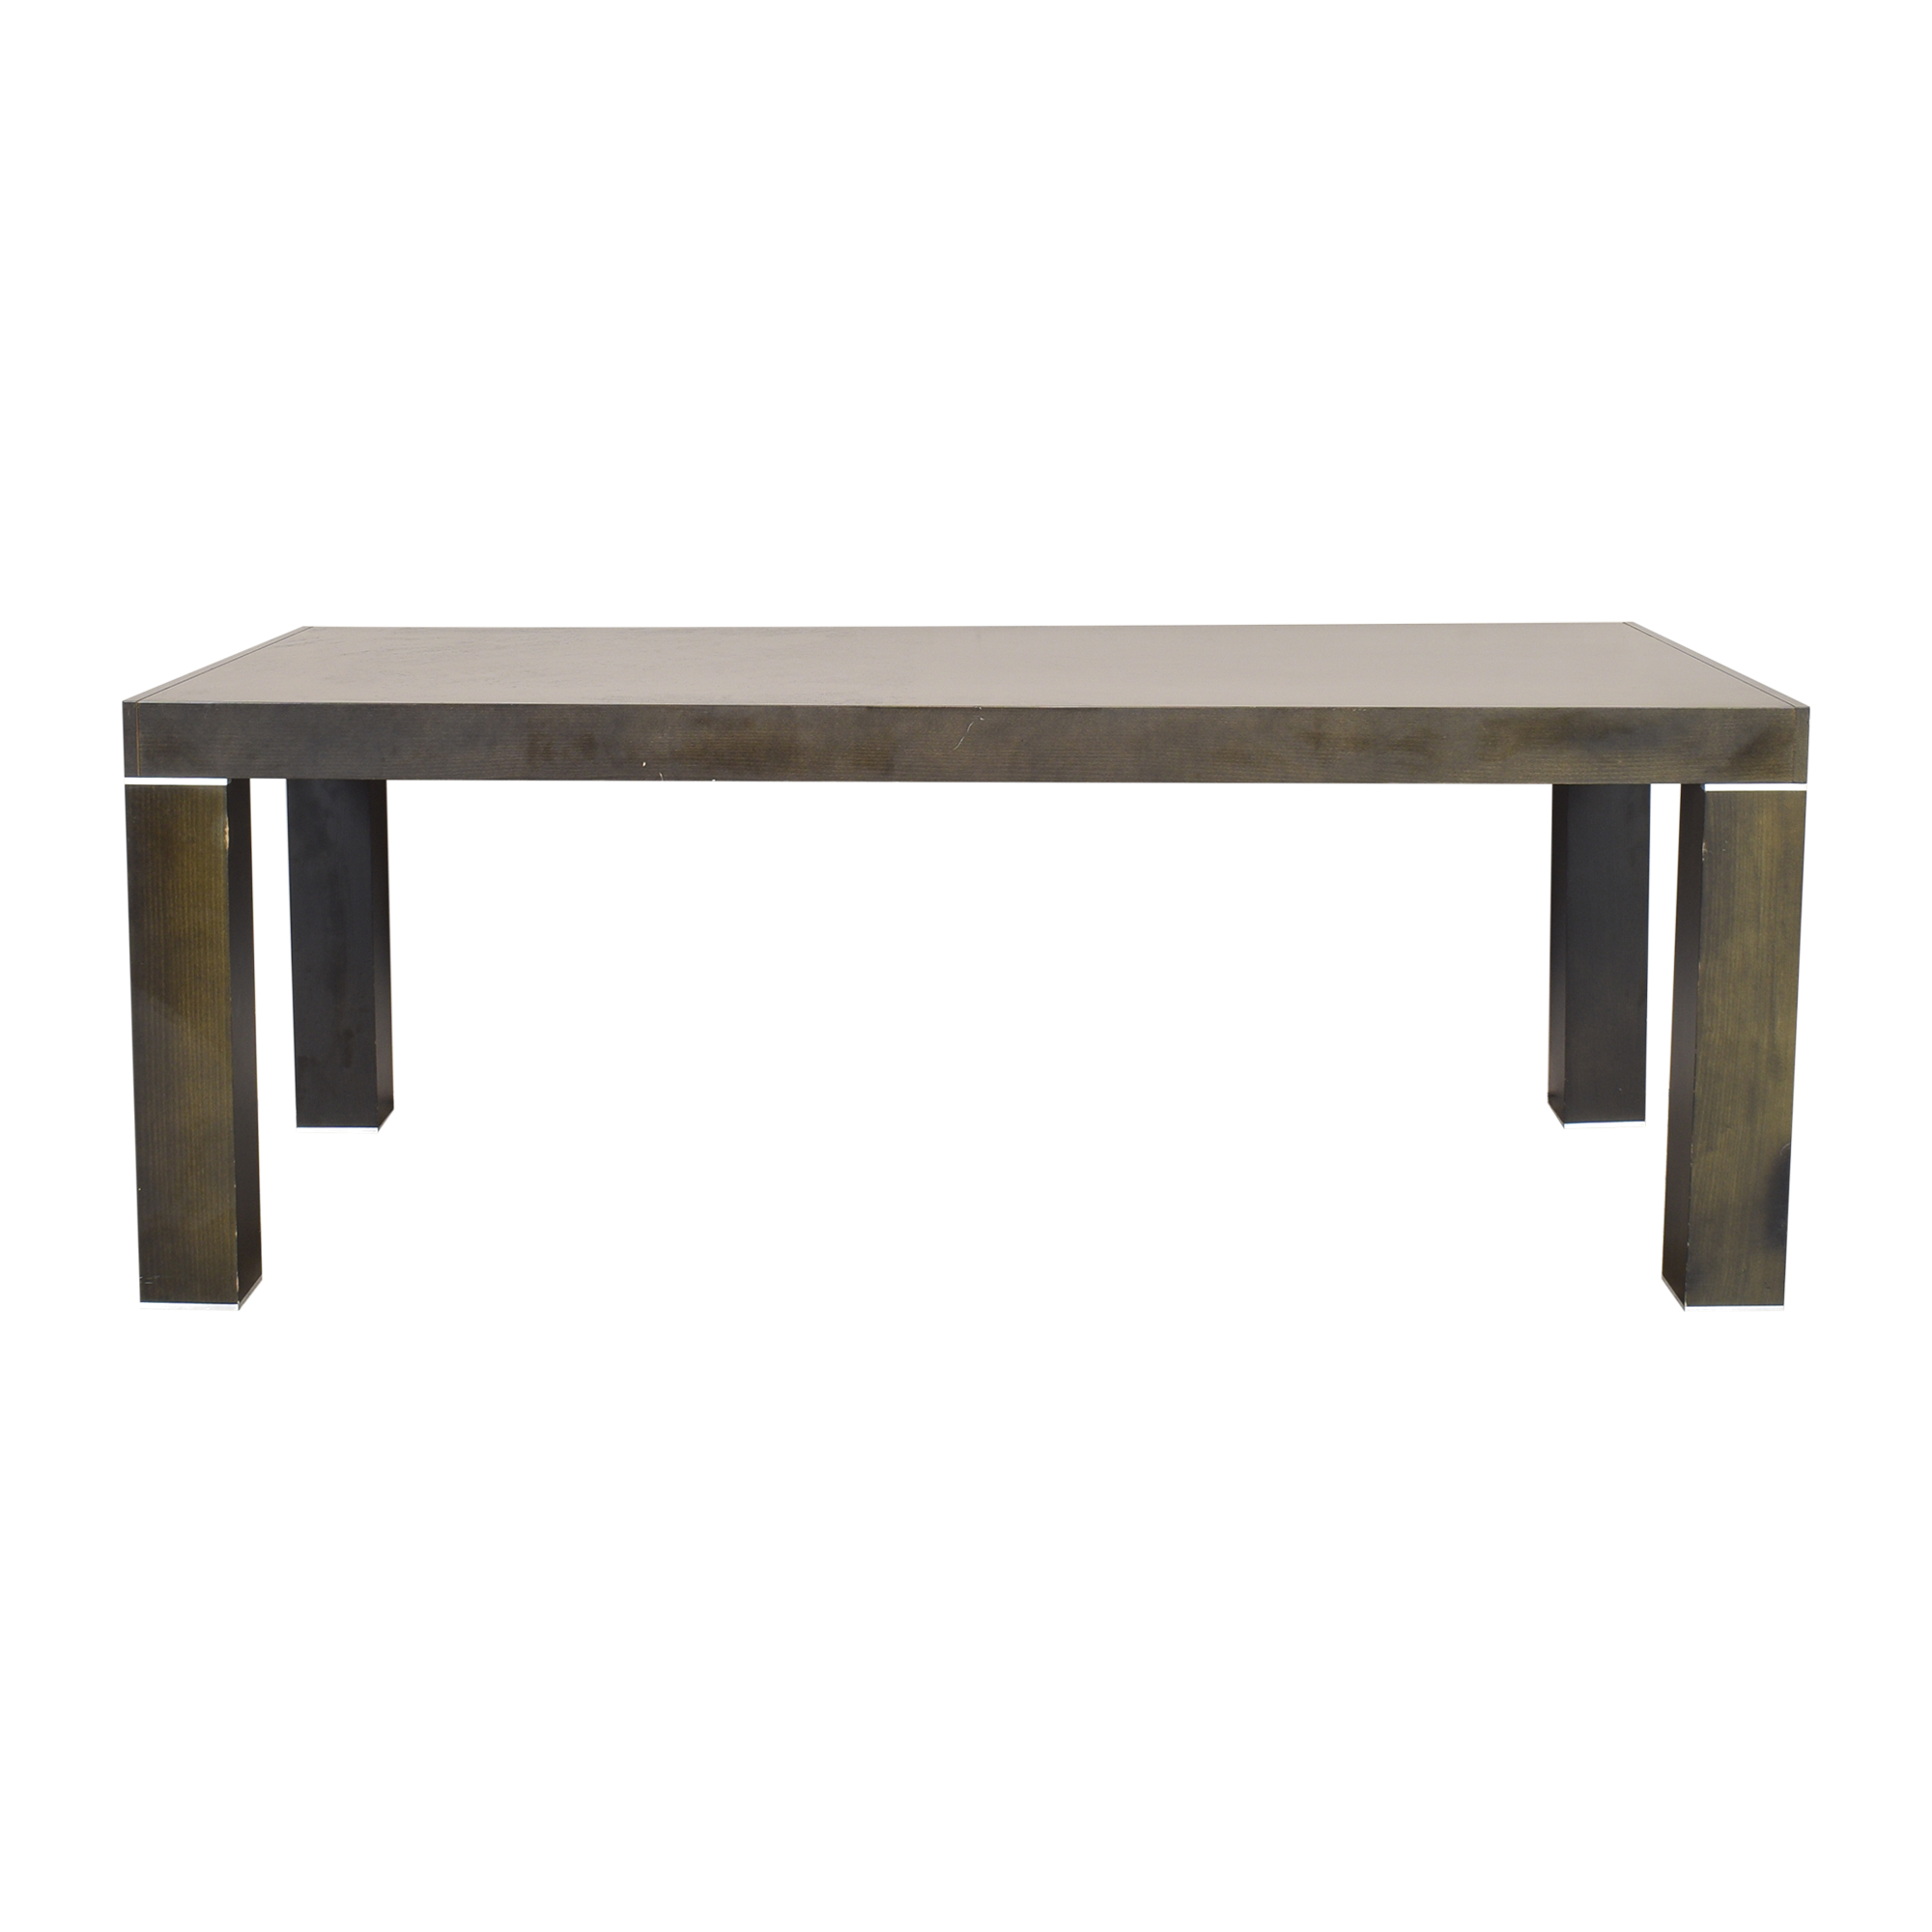 buy Roche Bobois Roche Bobois Rectangular Dining Table online